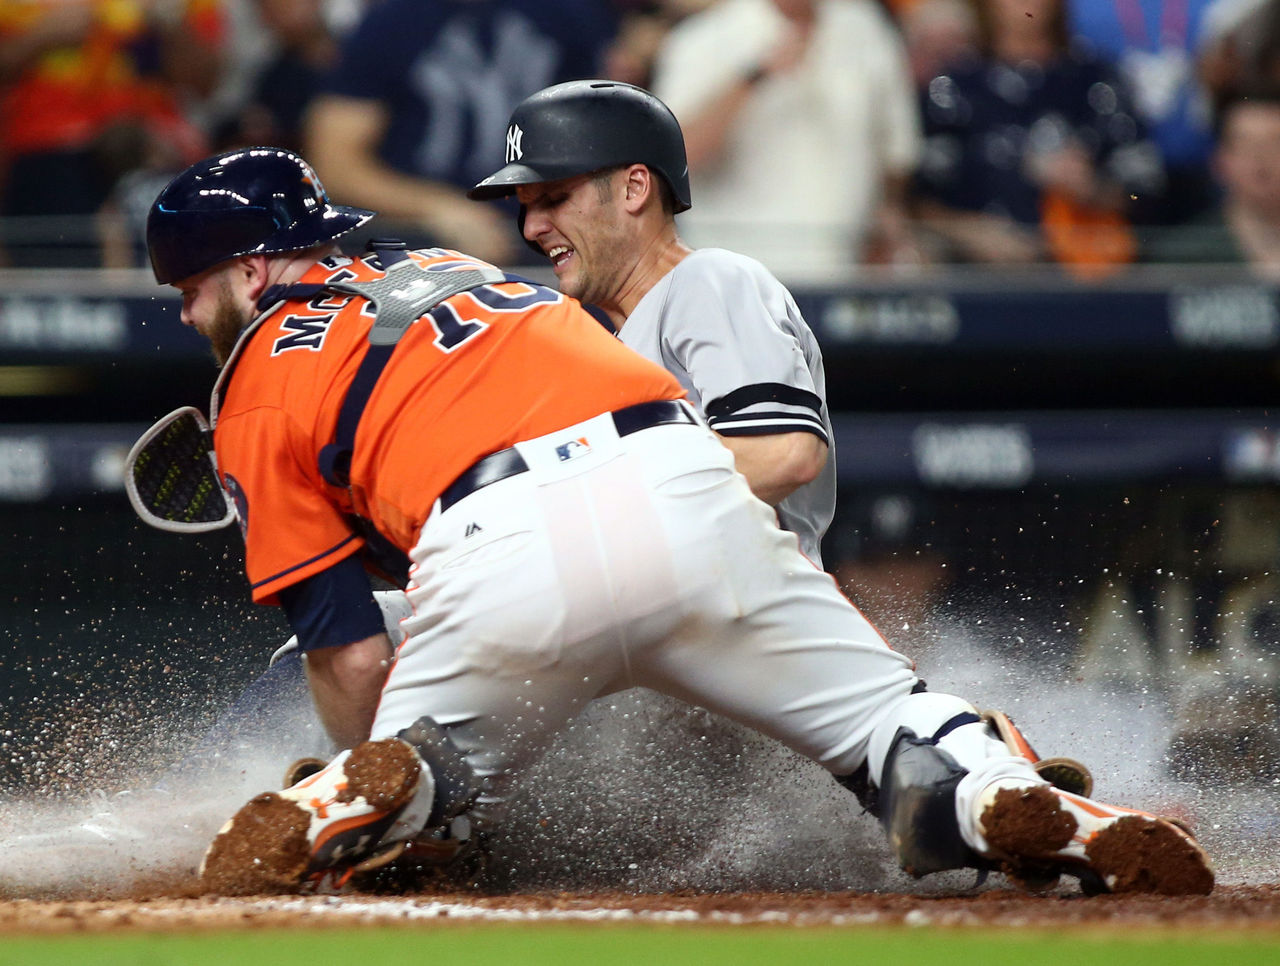 Cropped 2017 10 14t015610z 960671499 nocid rtrmadp 3 mlb alcs new york yankees at houston astros